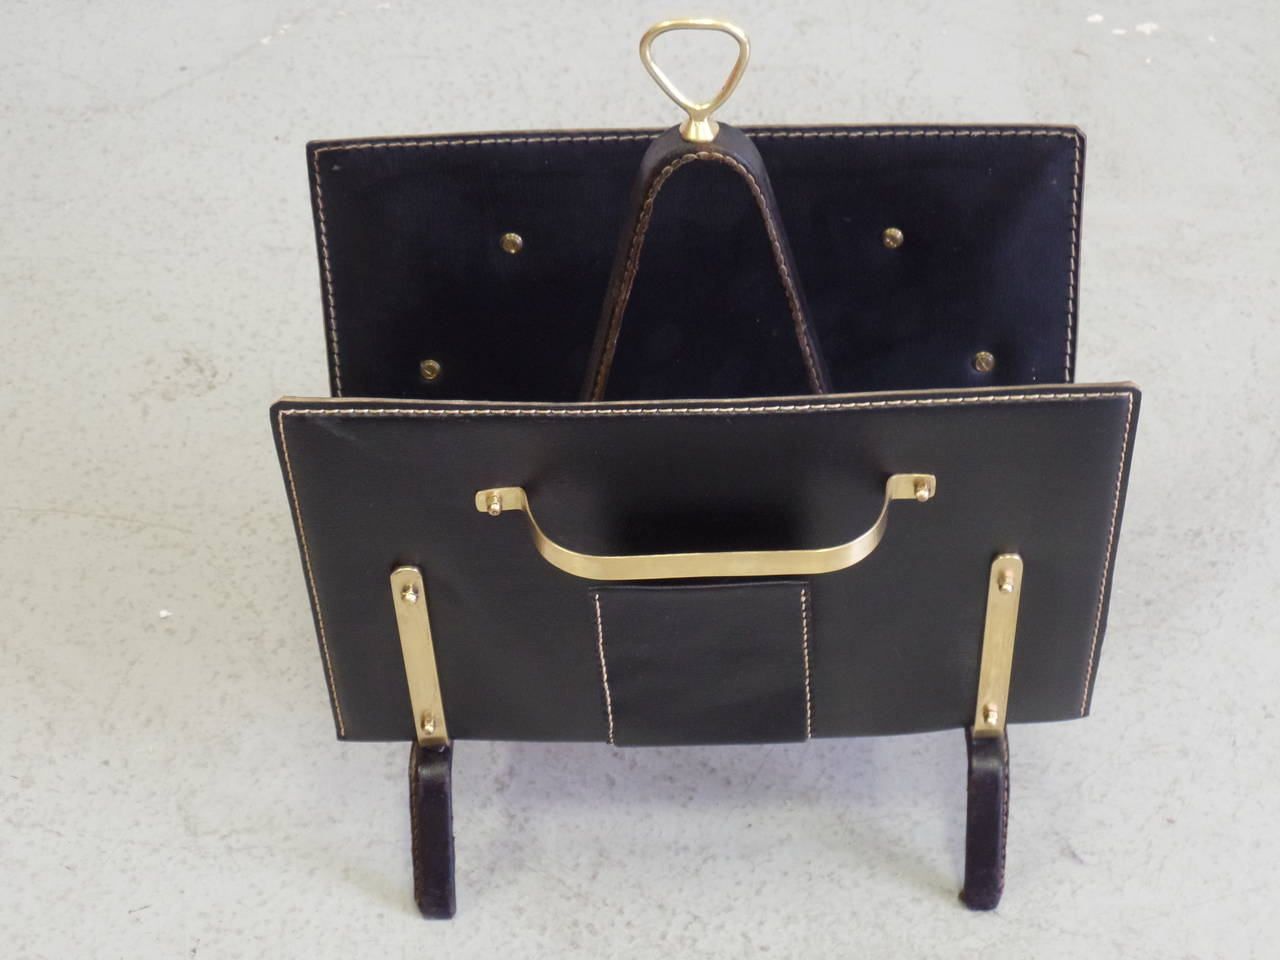 Elegant and timeless French Mid-Century Magazine rack or stand in a sober, modern spirit by Jacques Adnet. The piece is composed of black hand-stitched leather and the composition and color balance are completed by solid brass detailing. In